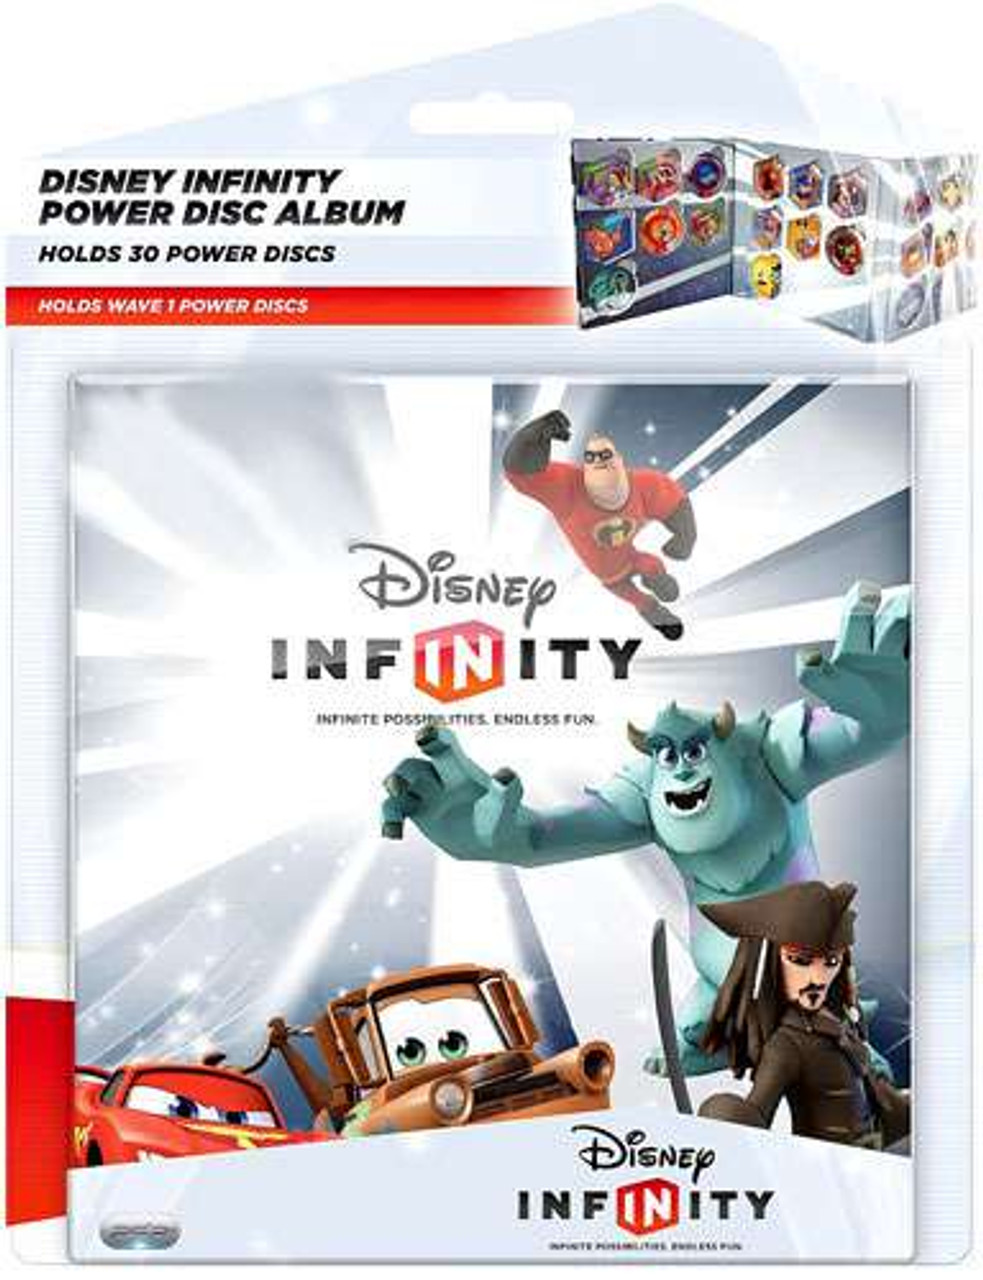 Disney Infinity Exclusive Power Disc Album